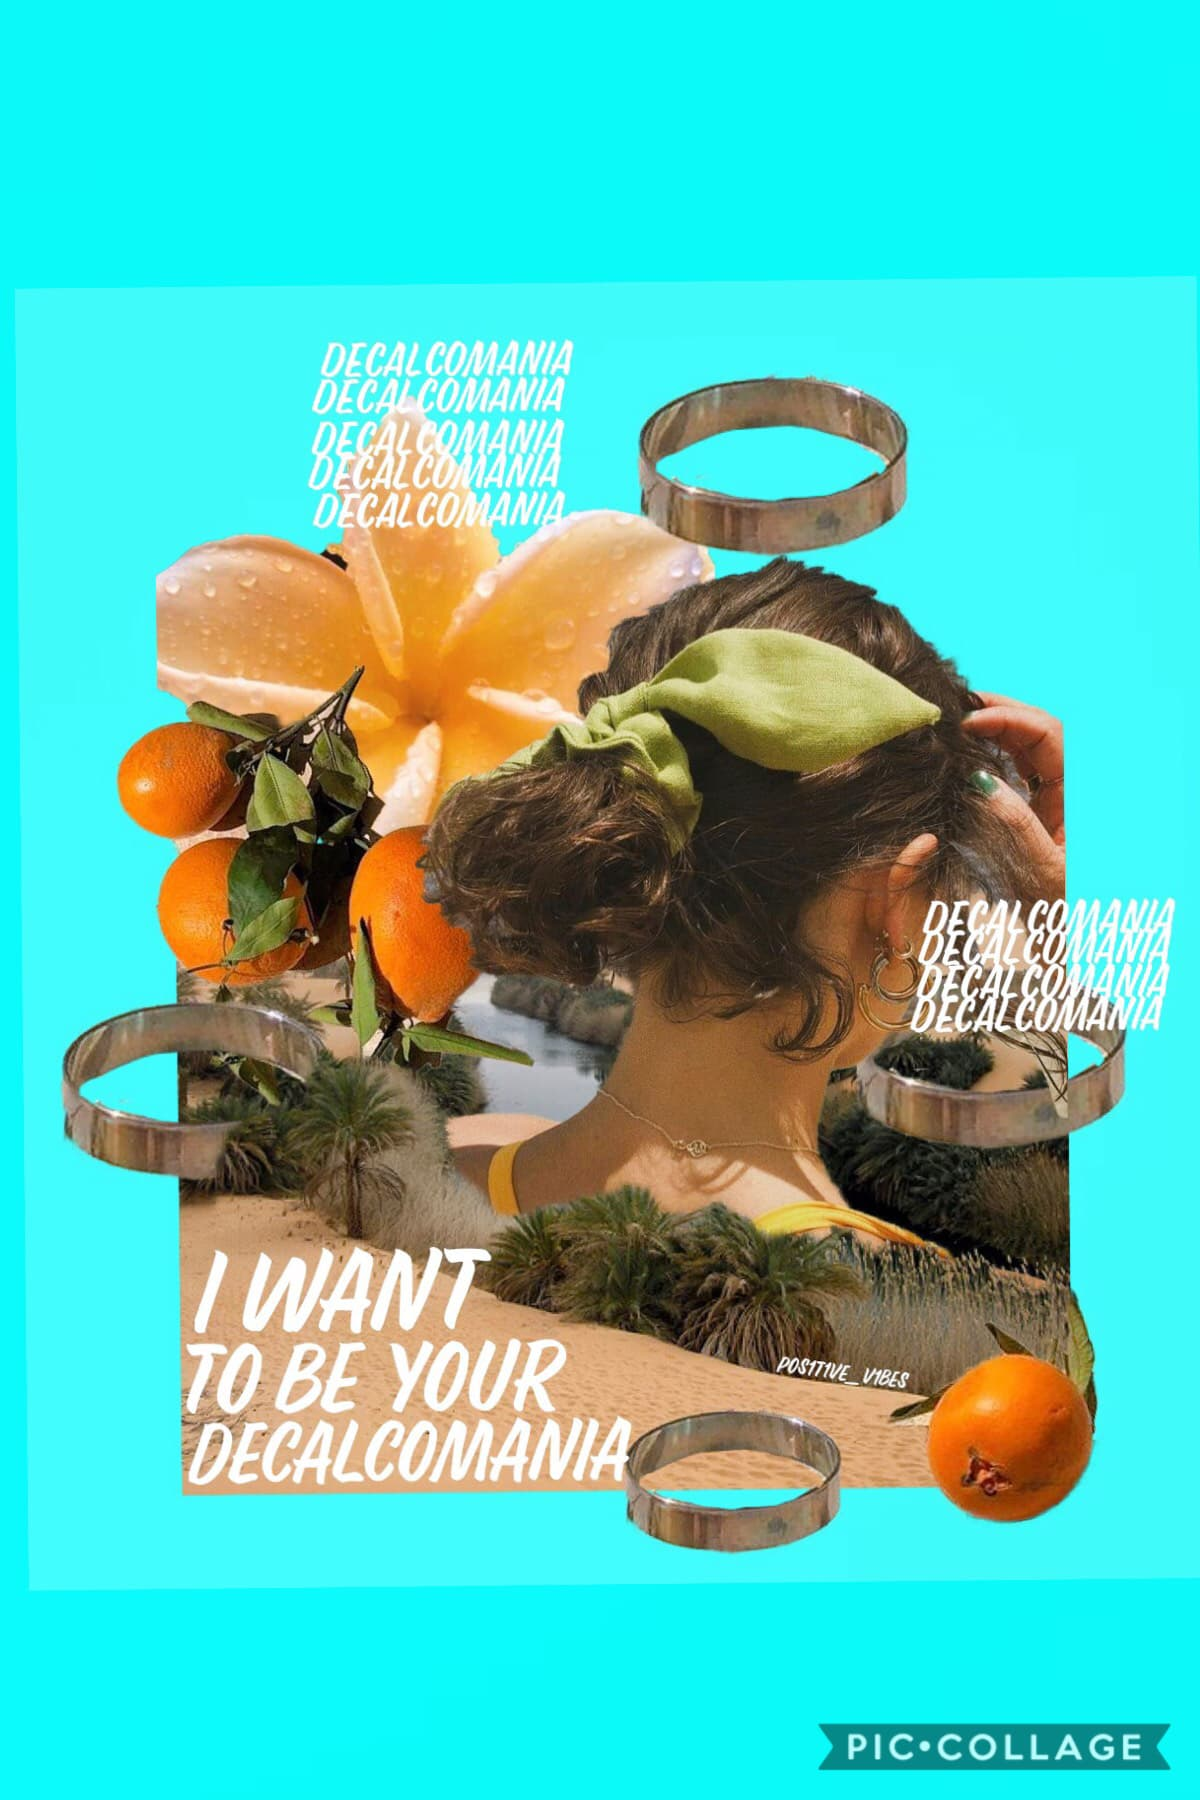 """🍊lyrics from, """"decalcomania"""" by jungkook🍊here's a collage before I go back to school lol🍊 not looking forward to it,, my classes are so mixed up & confusing yEP🍊i'll be somewhat inactive :)🍊inspired by the one & only @castlescience !🍊 #PCONLY #SCHOOL #CON"""